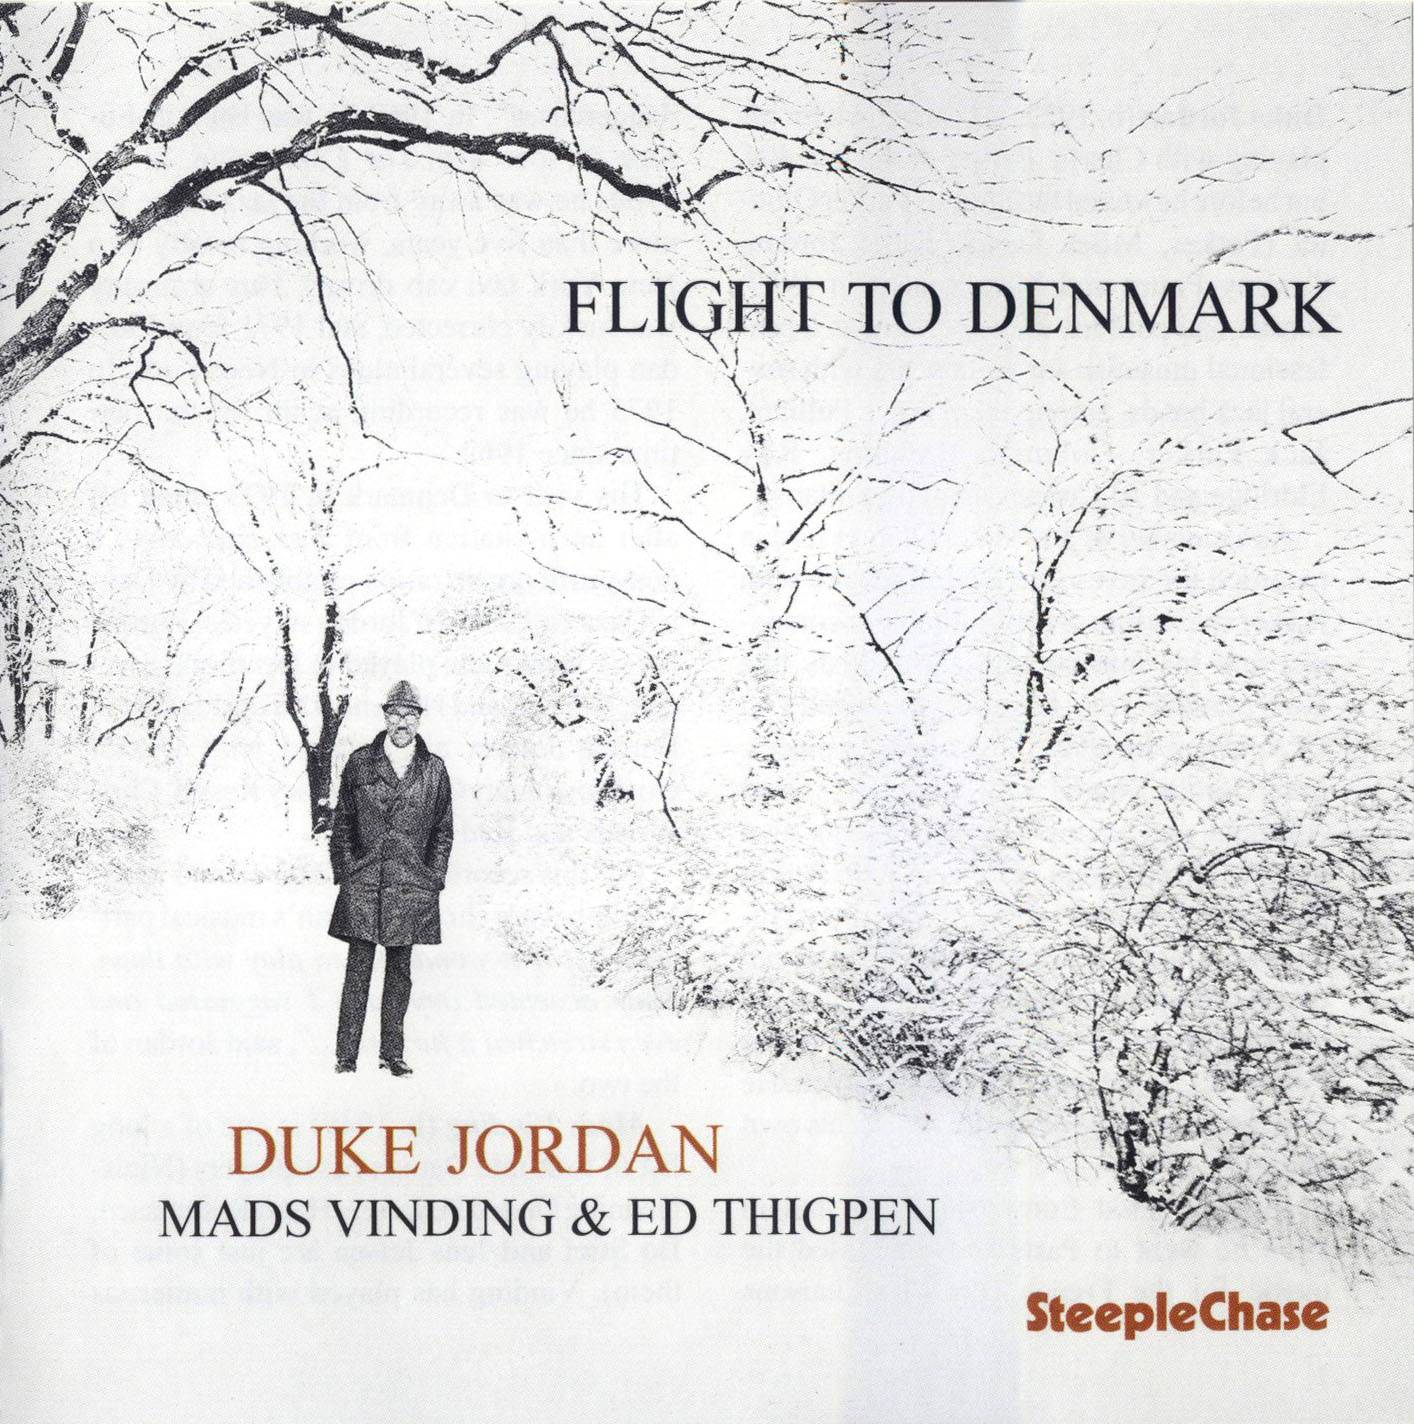 Duke Jordan Trio - Flight To Denmark (1973) Reissue 2008